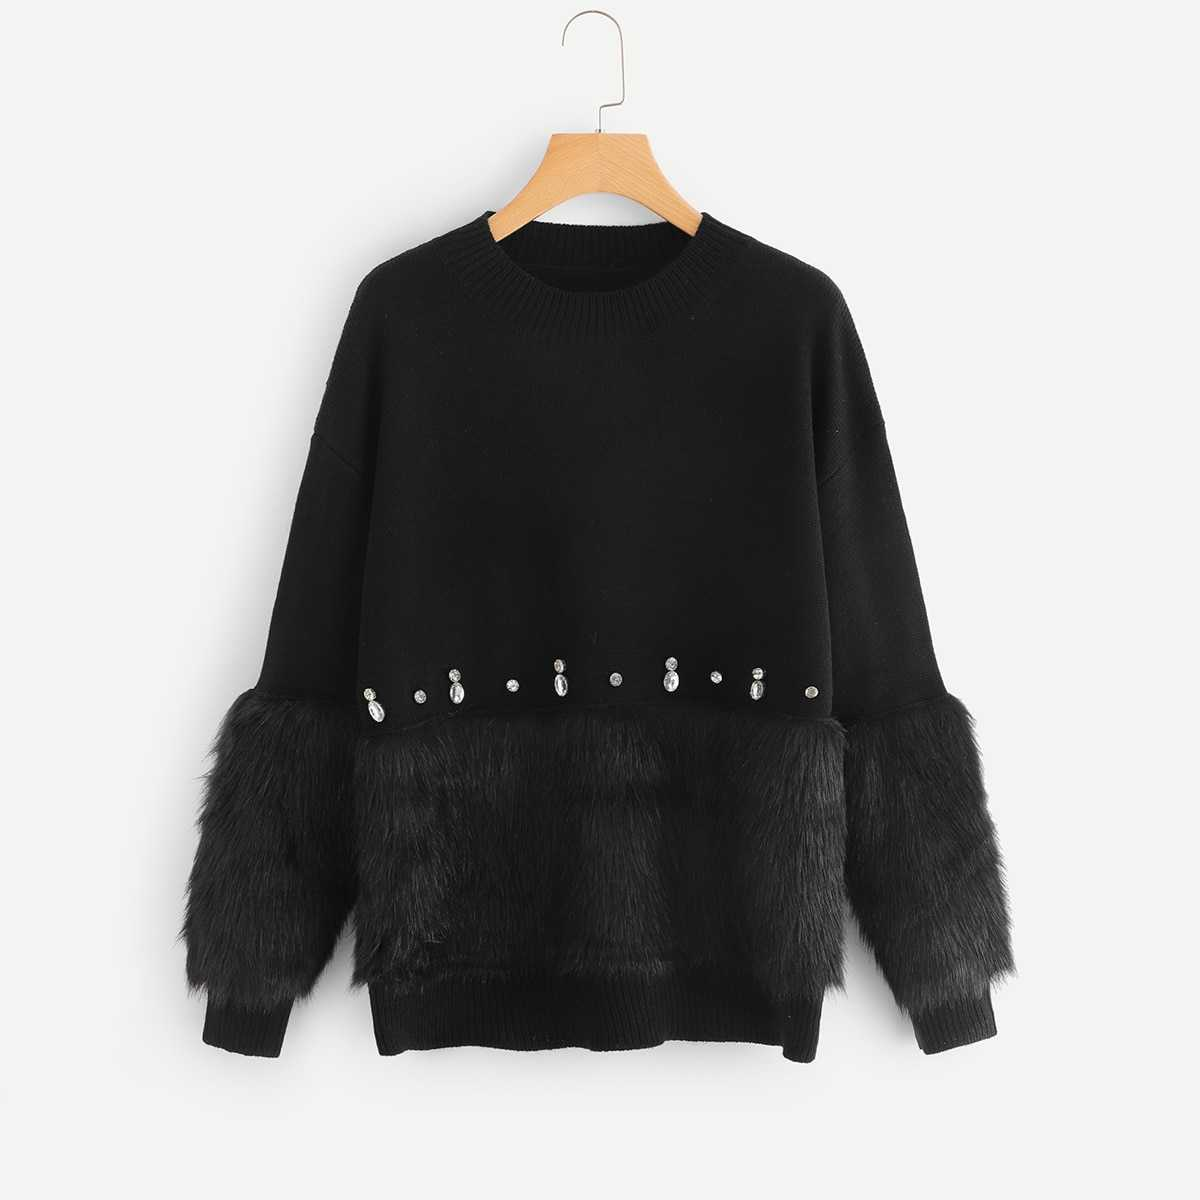 Rhinestone and Faux Fur Embellished Sweater in Black by ROMWE on GOOFASH